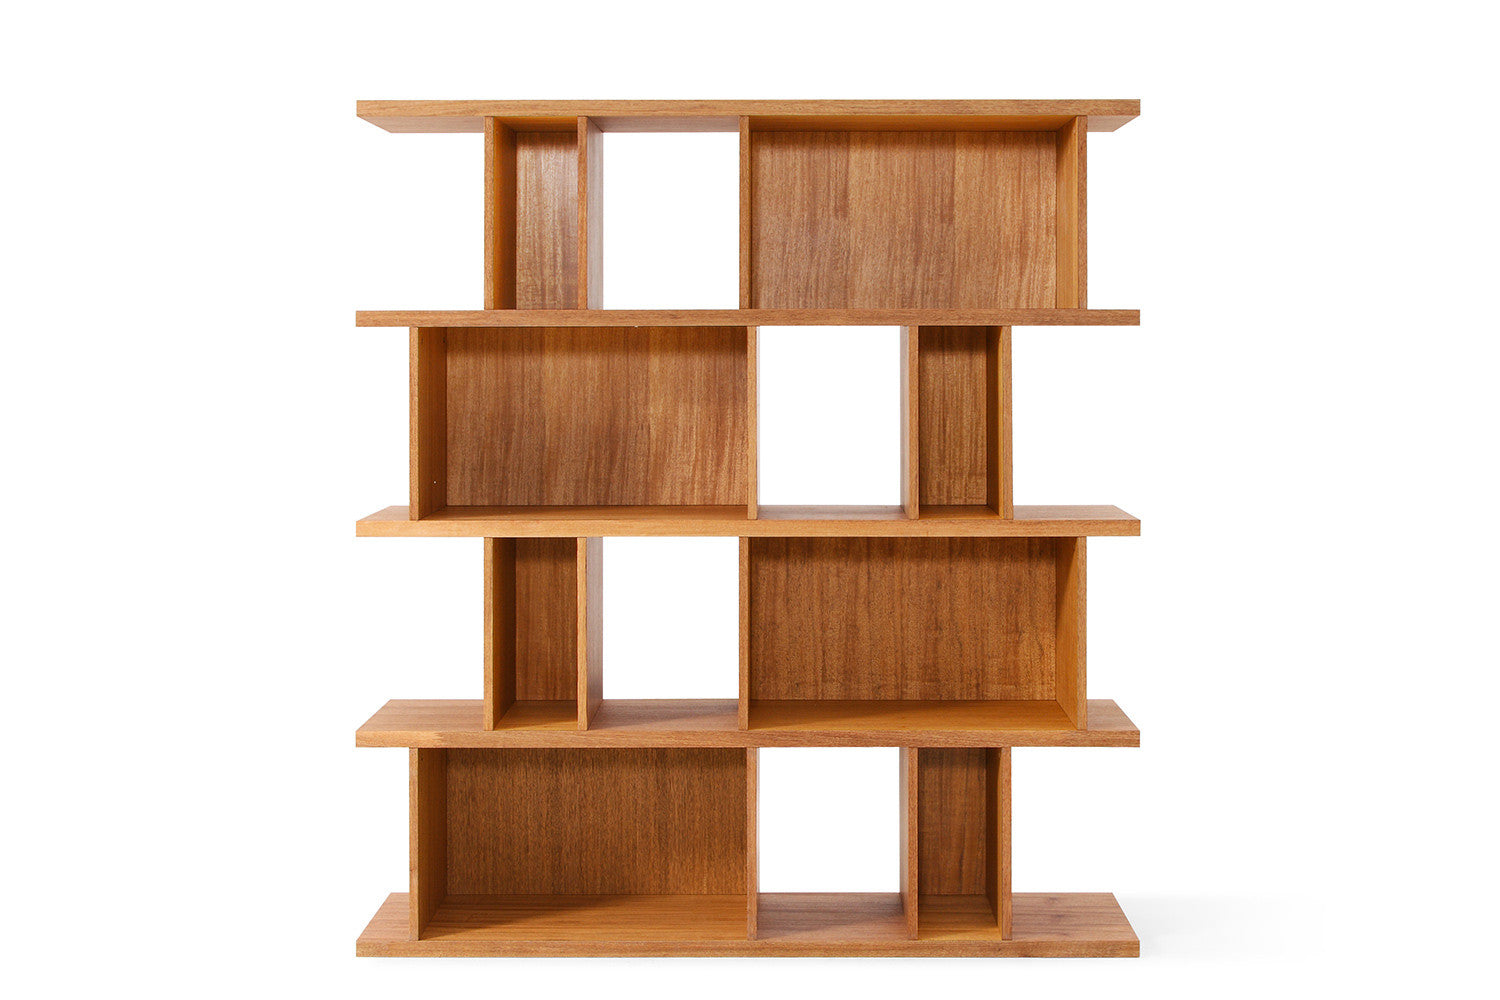 Biblioth que design scandinave en bois berra dewarens for Architecture scandinave